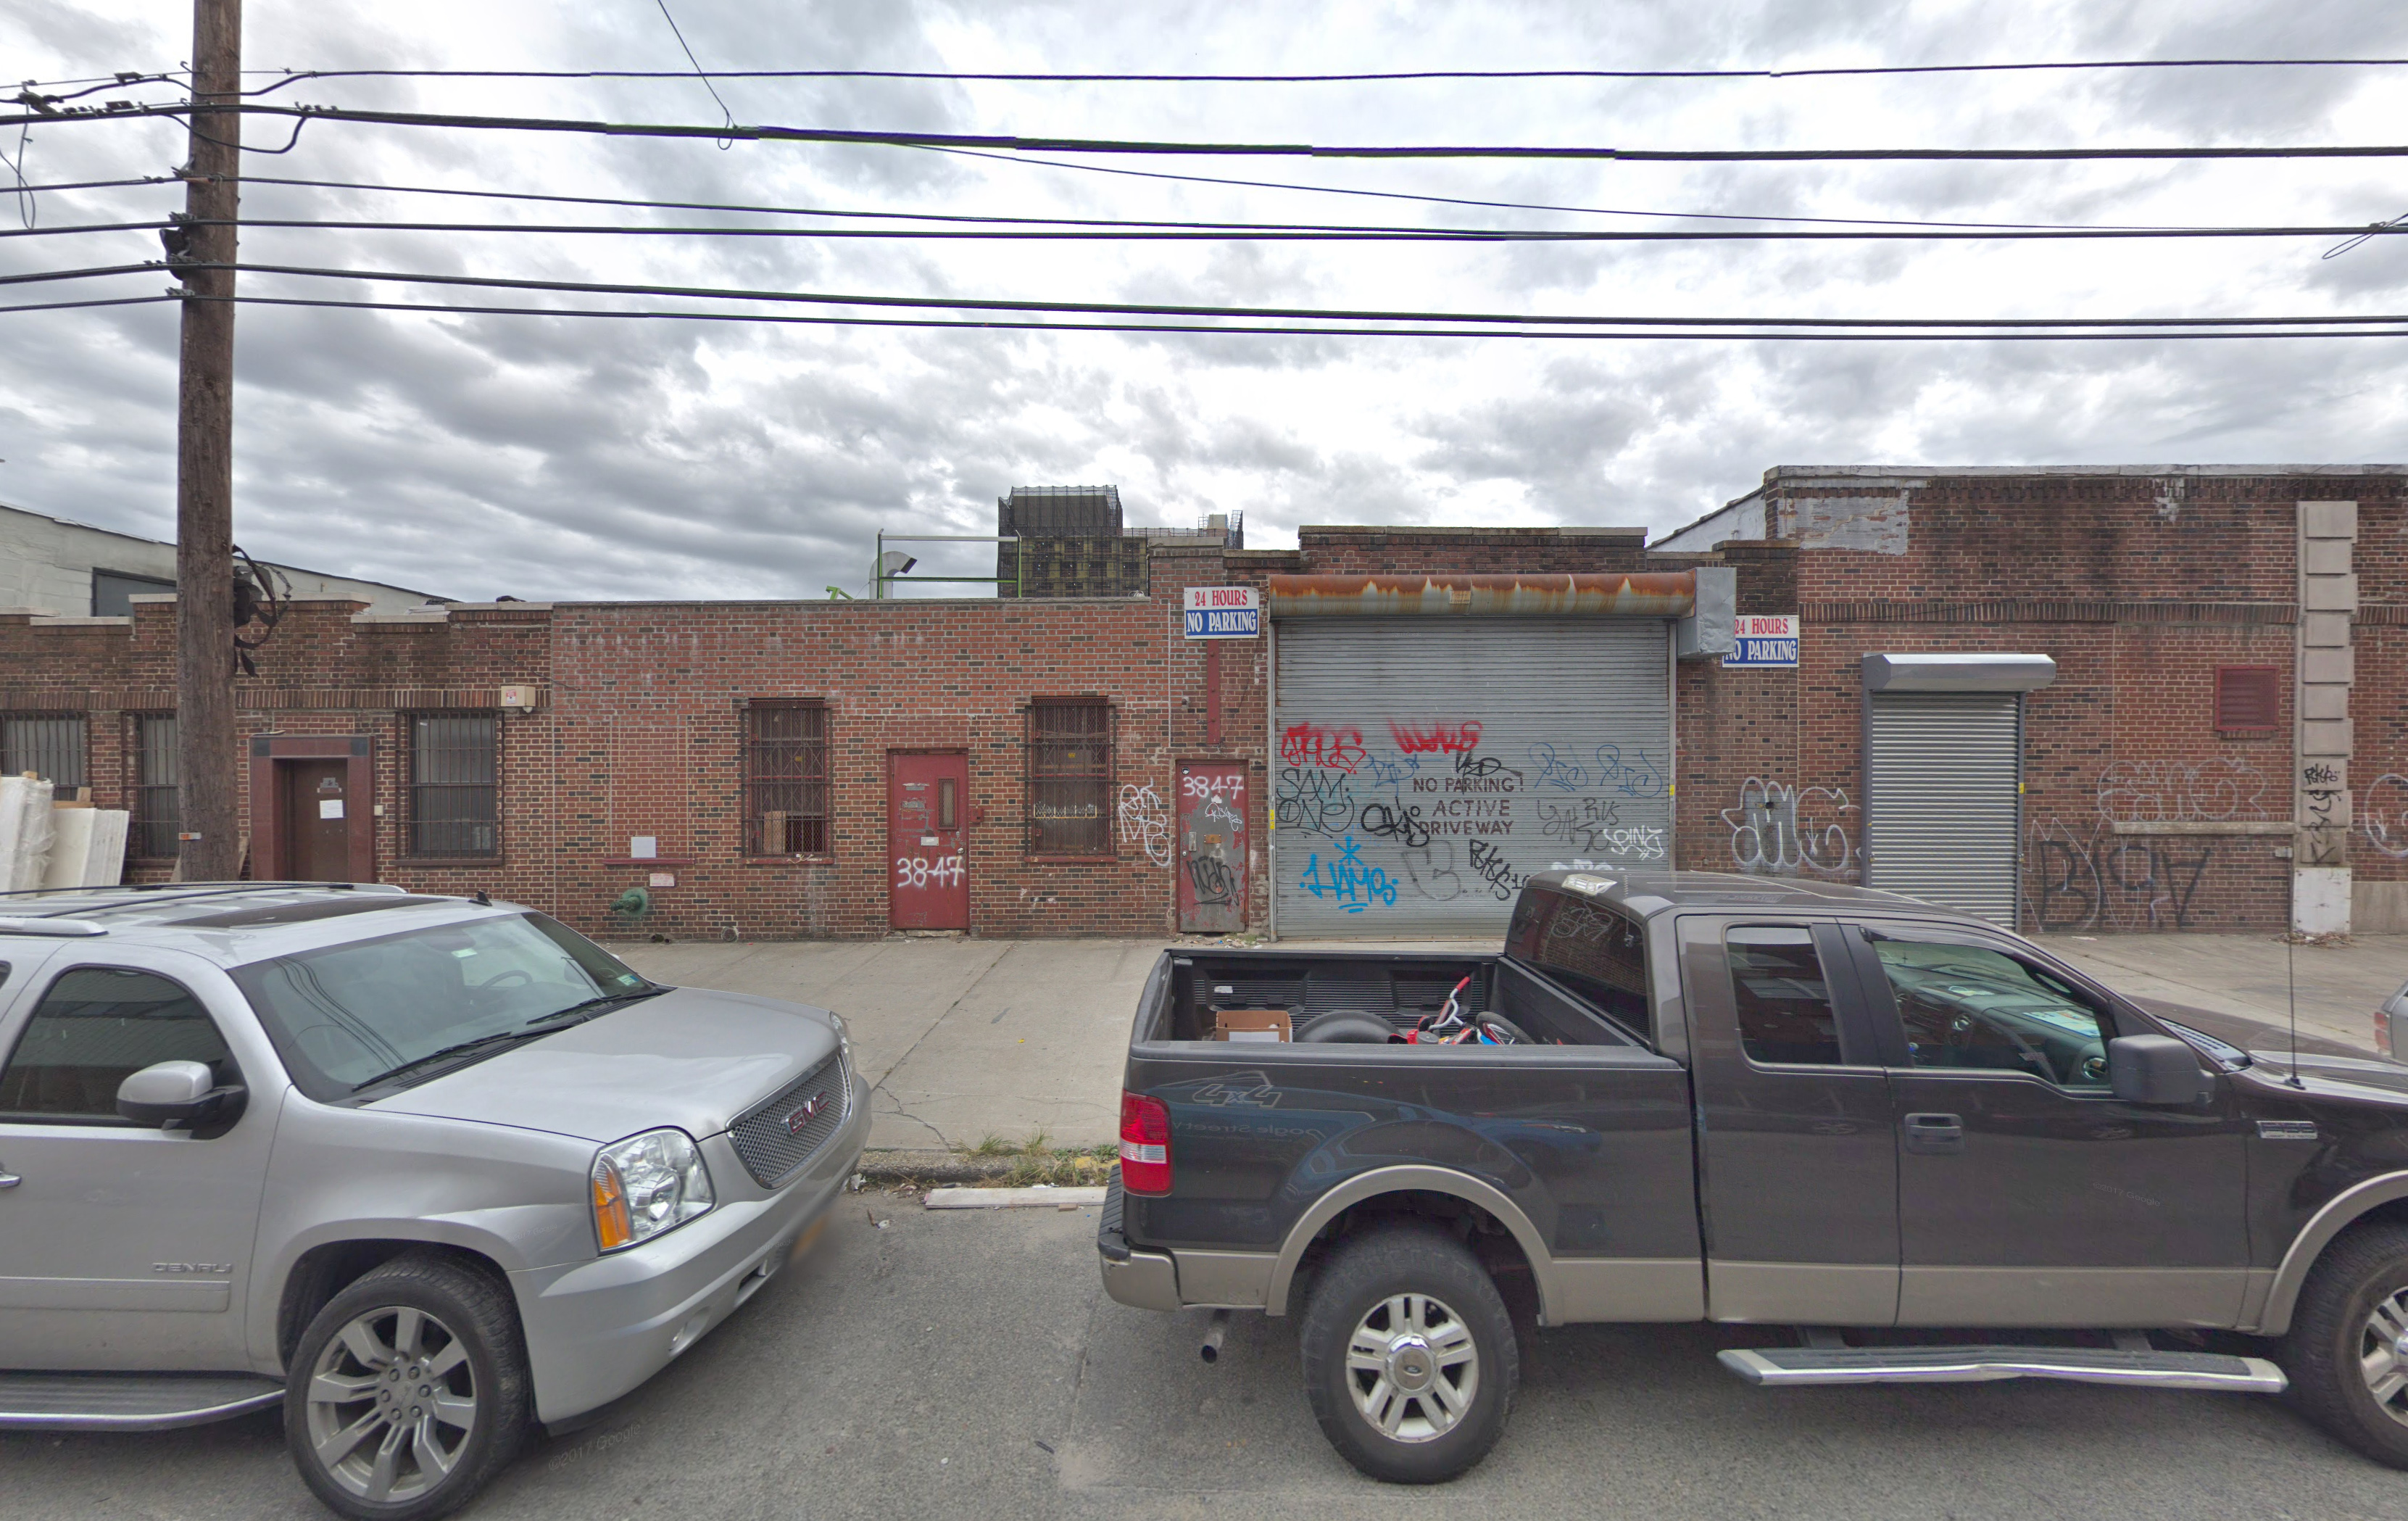 38-39 9th Street, via Google Maps